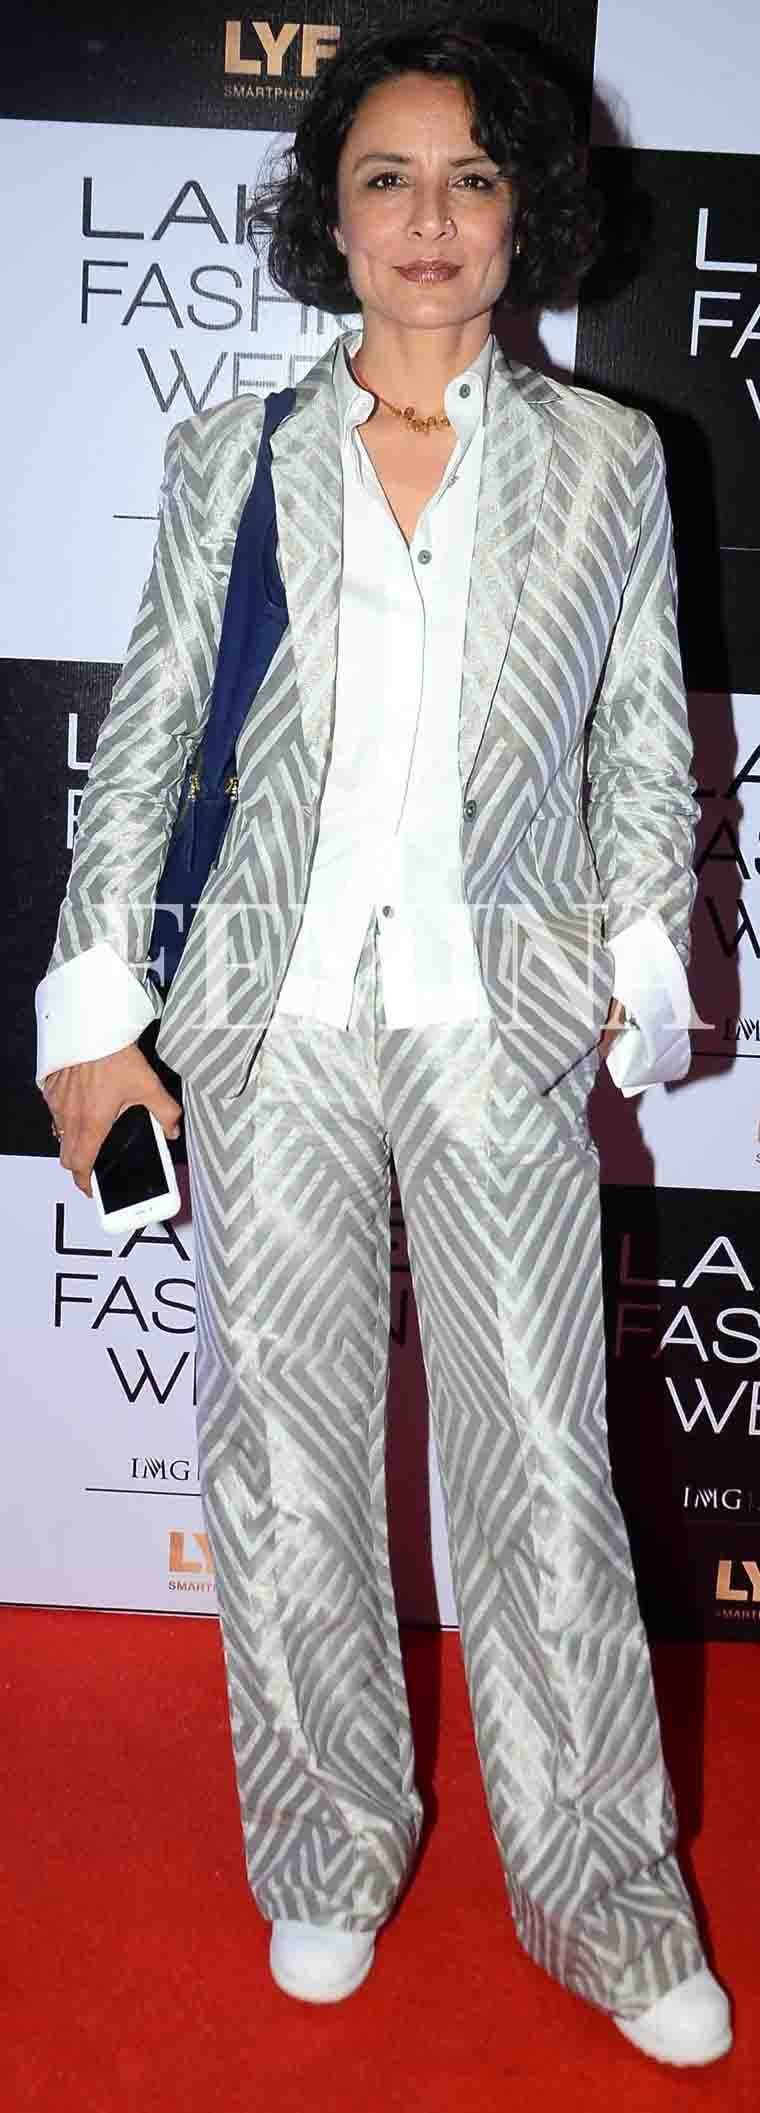 ADHUNA AKHTAR: The celebrity hairstylist wore a killer silver suit by Payal Khandwala for the designer's fashion show. We love the straight fit of the trousers and the way she paired it all with a pair of white sneakers.